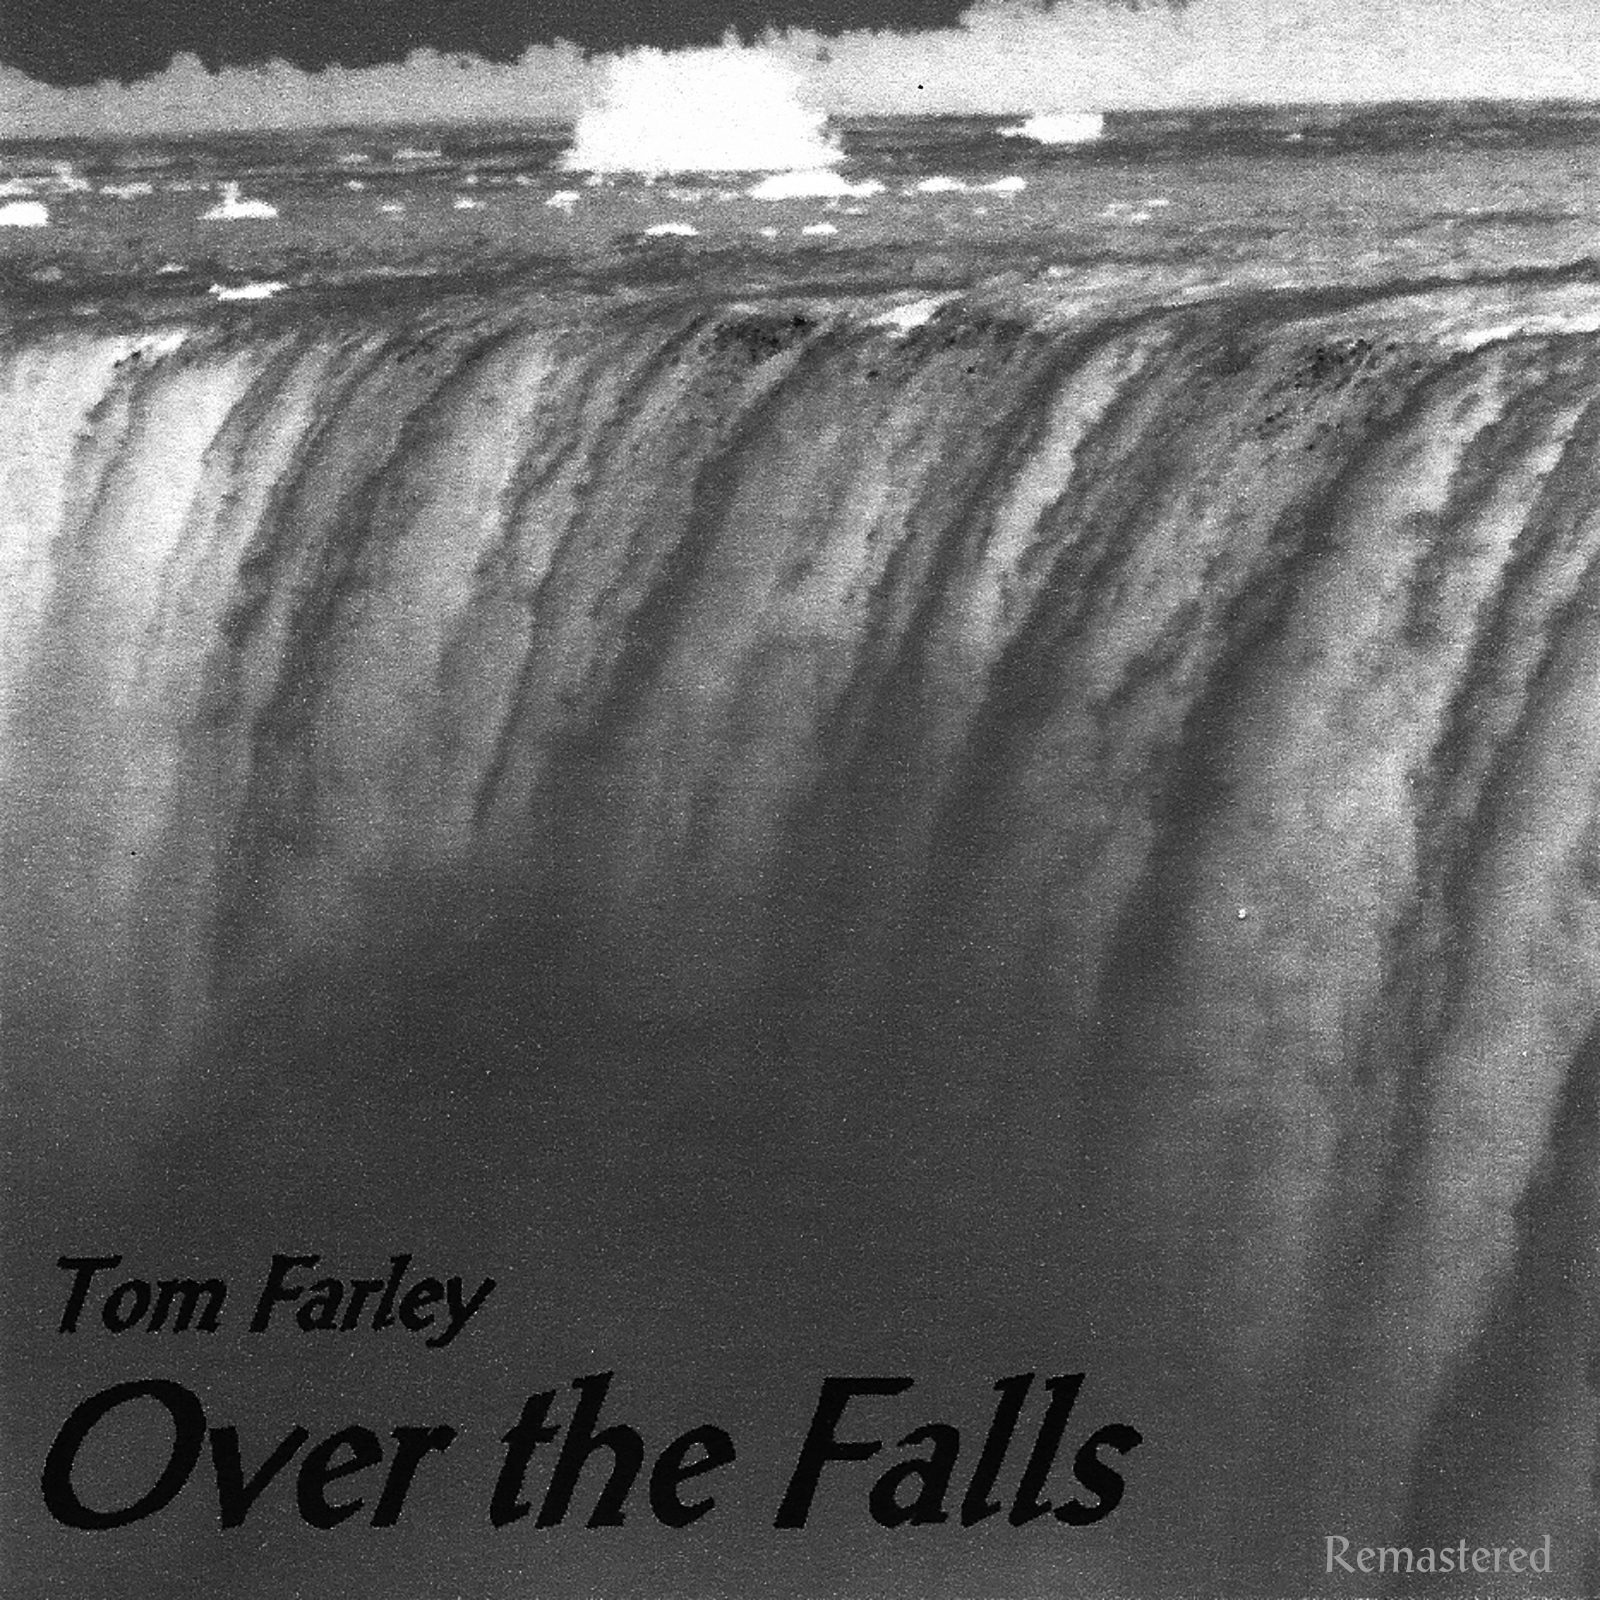 """Over the Falls Remastered"""